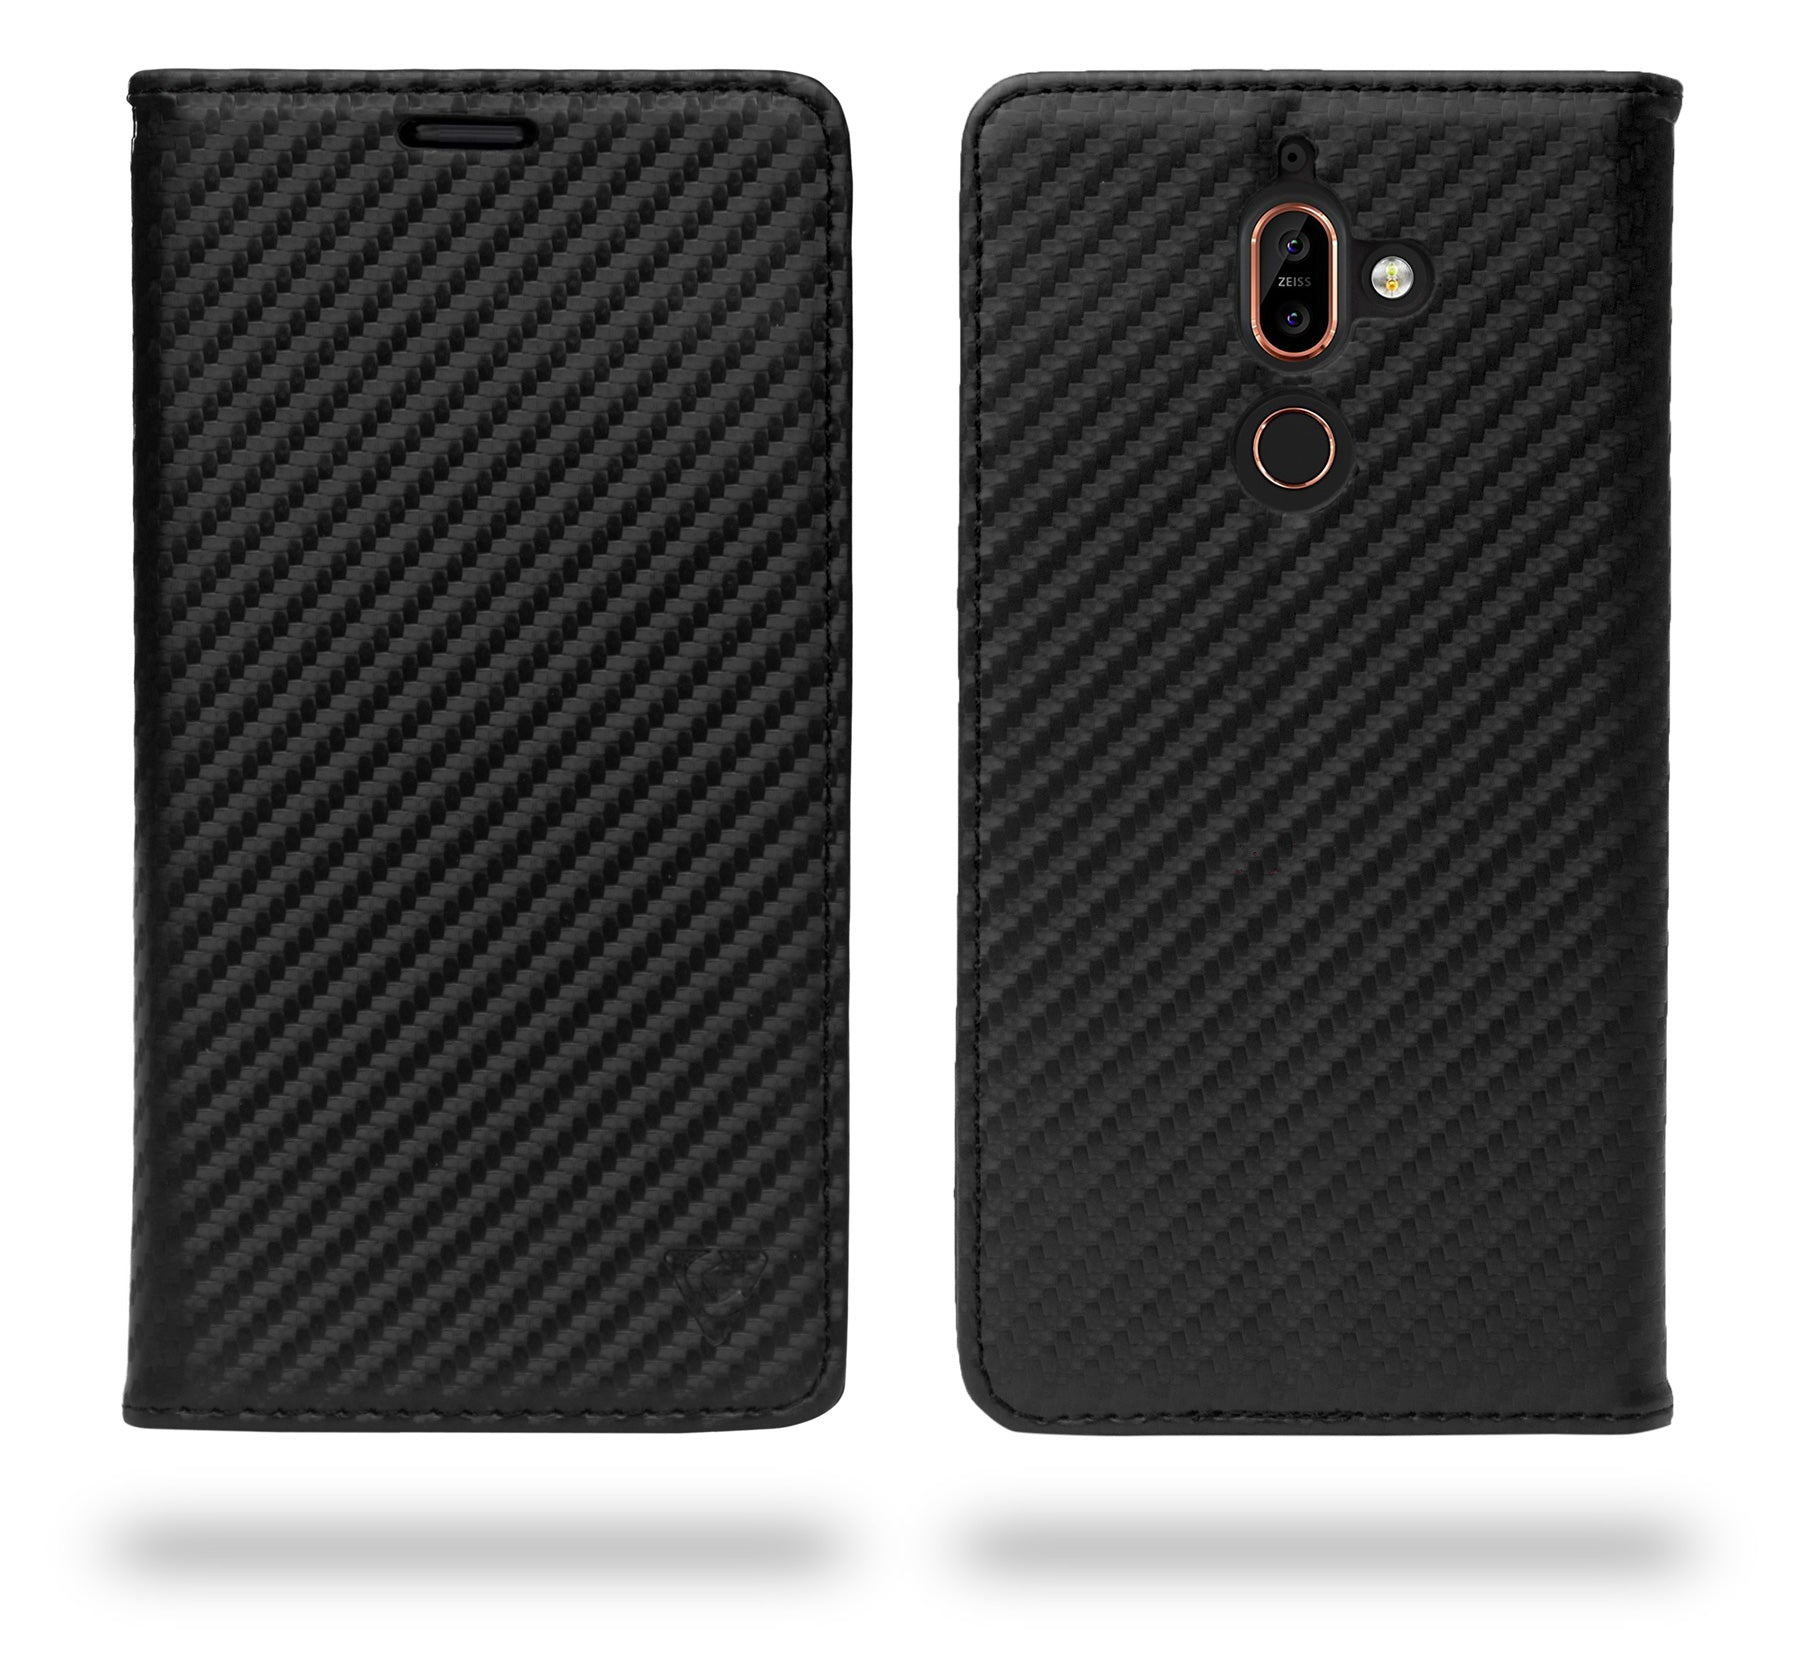 Ceego Compact Carbon Fiber Flip Cover for Nokia 7 Plus With Magnetic Lock (Super Black)